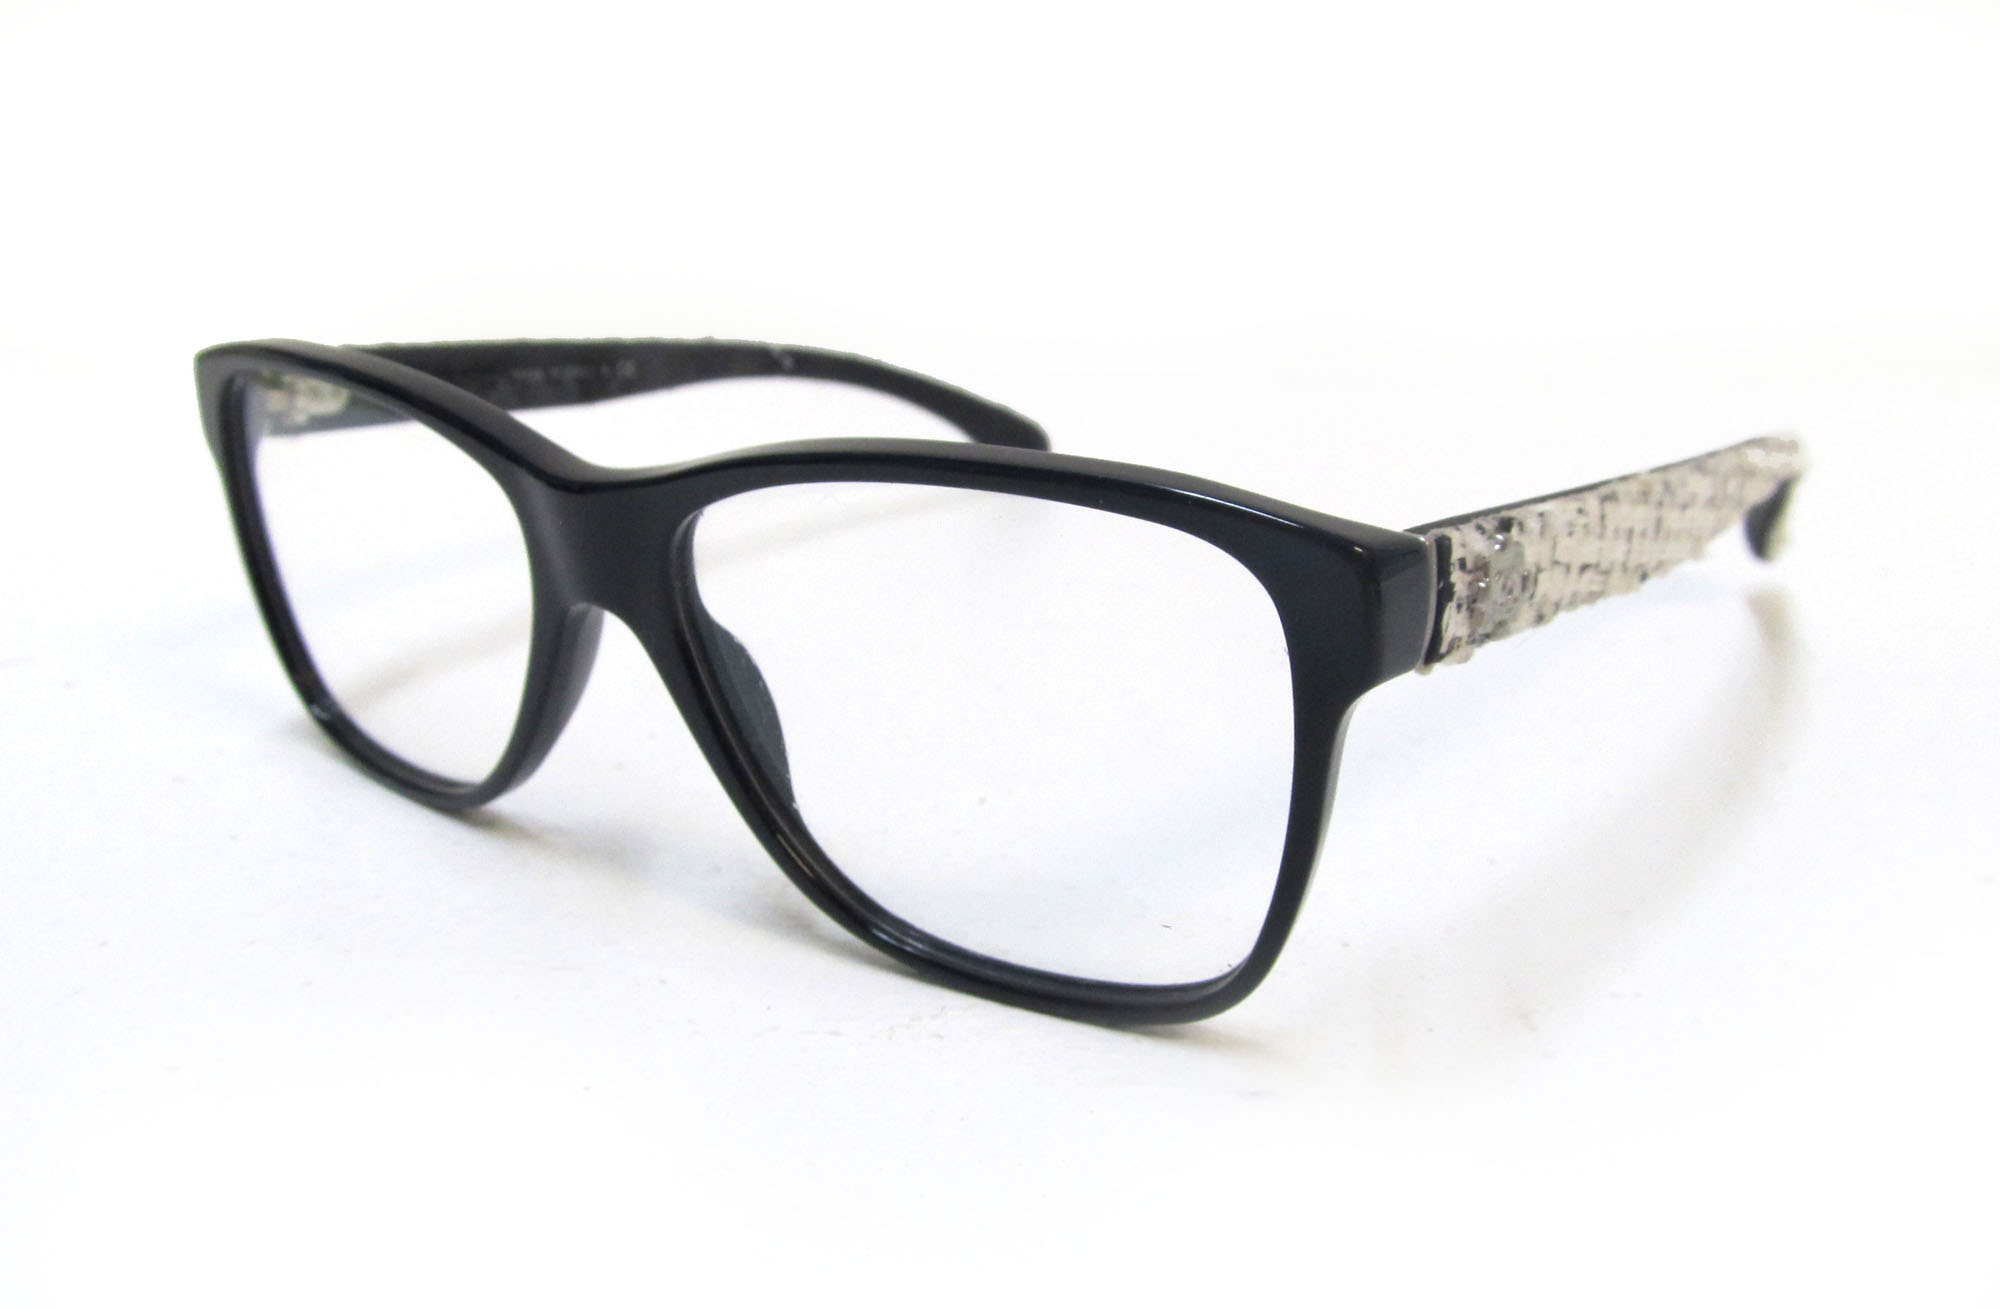 Eyeglasses Frame Trends 2016 : The Best Eyewear Trends for 2015-2016